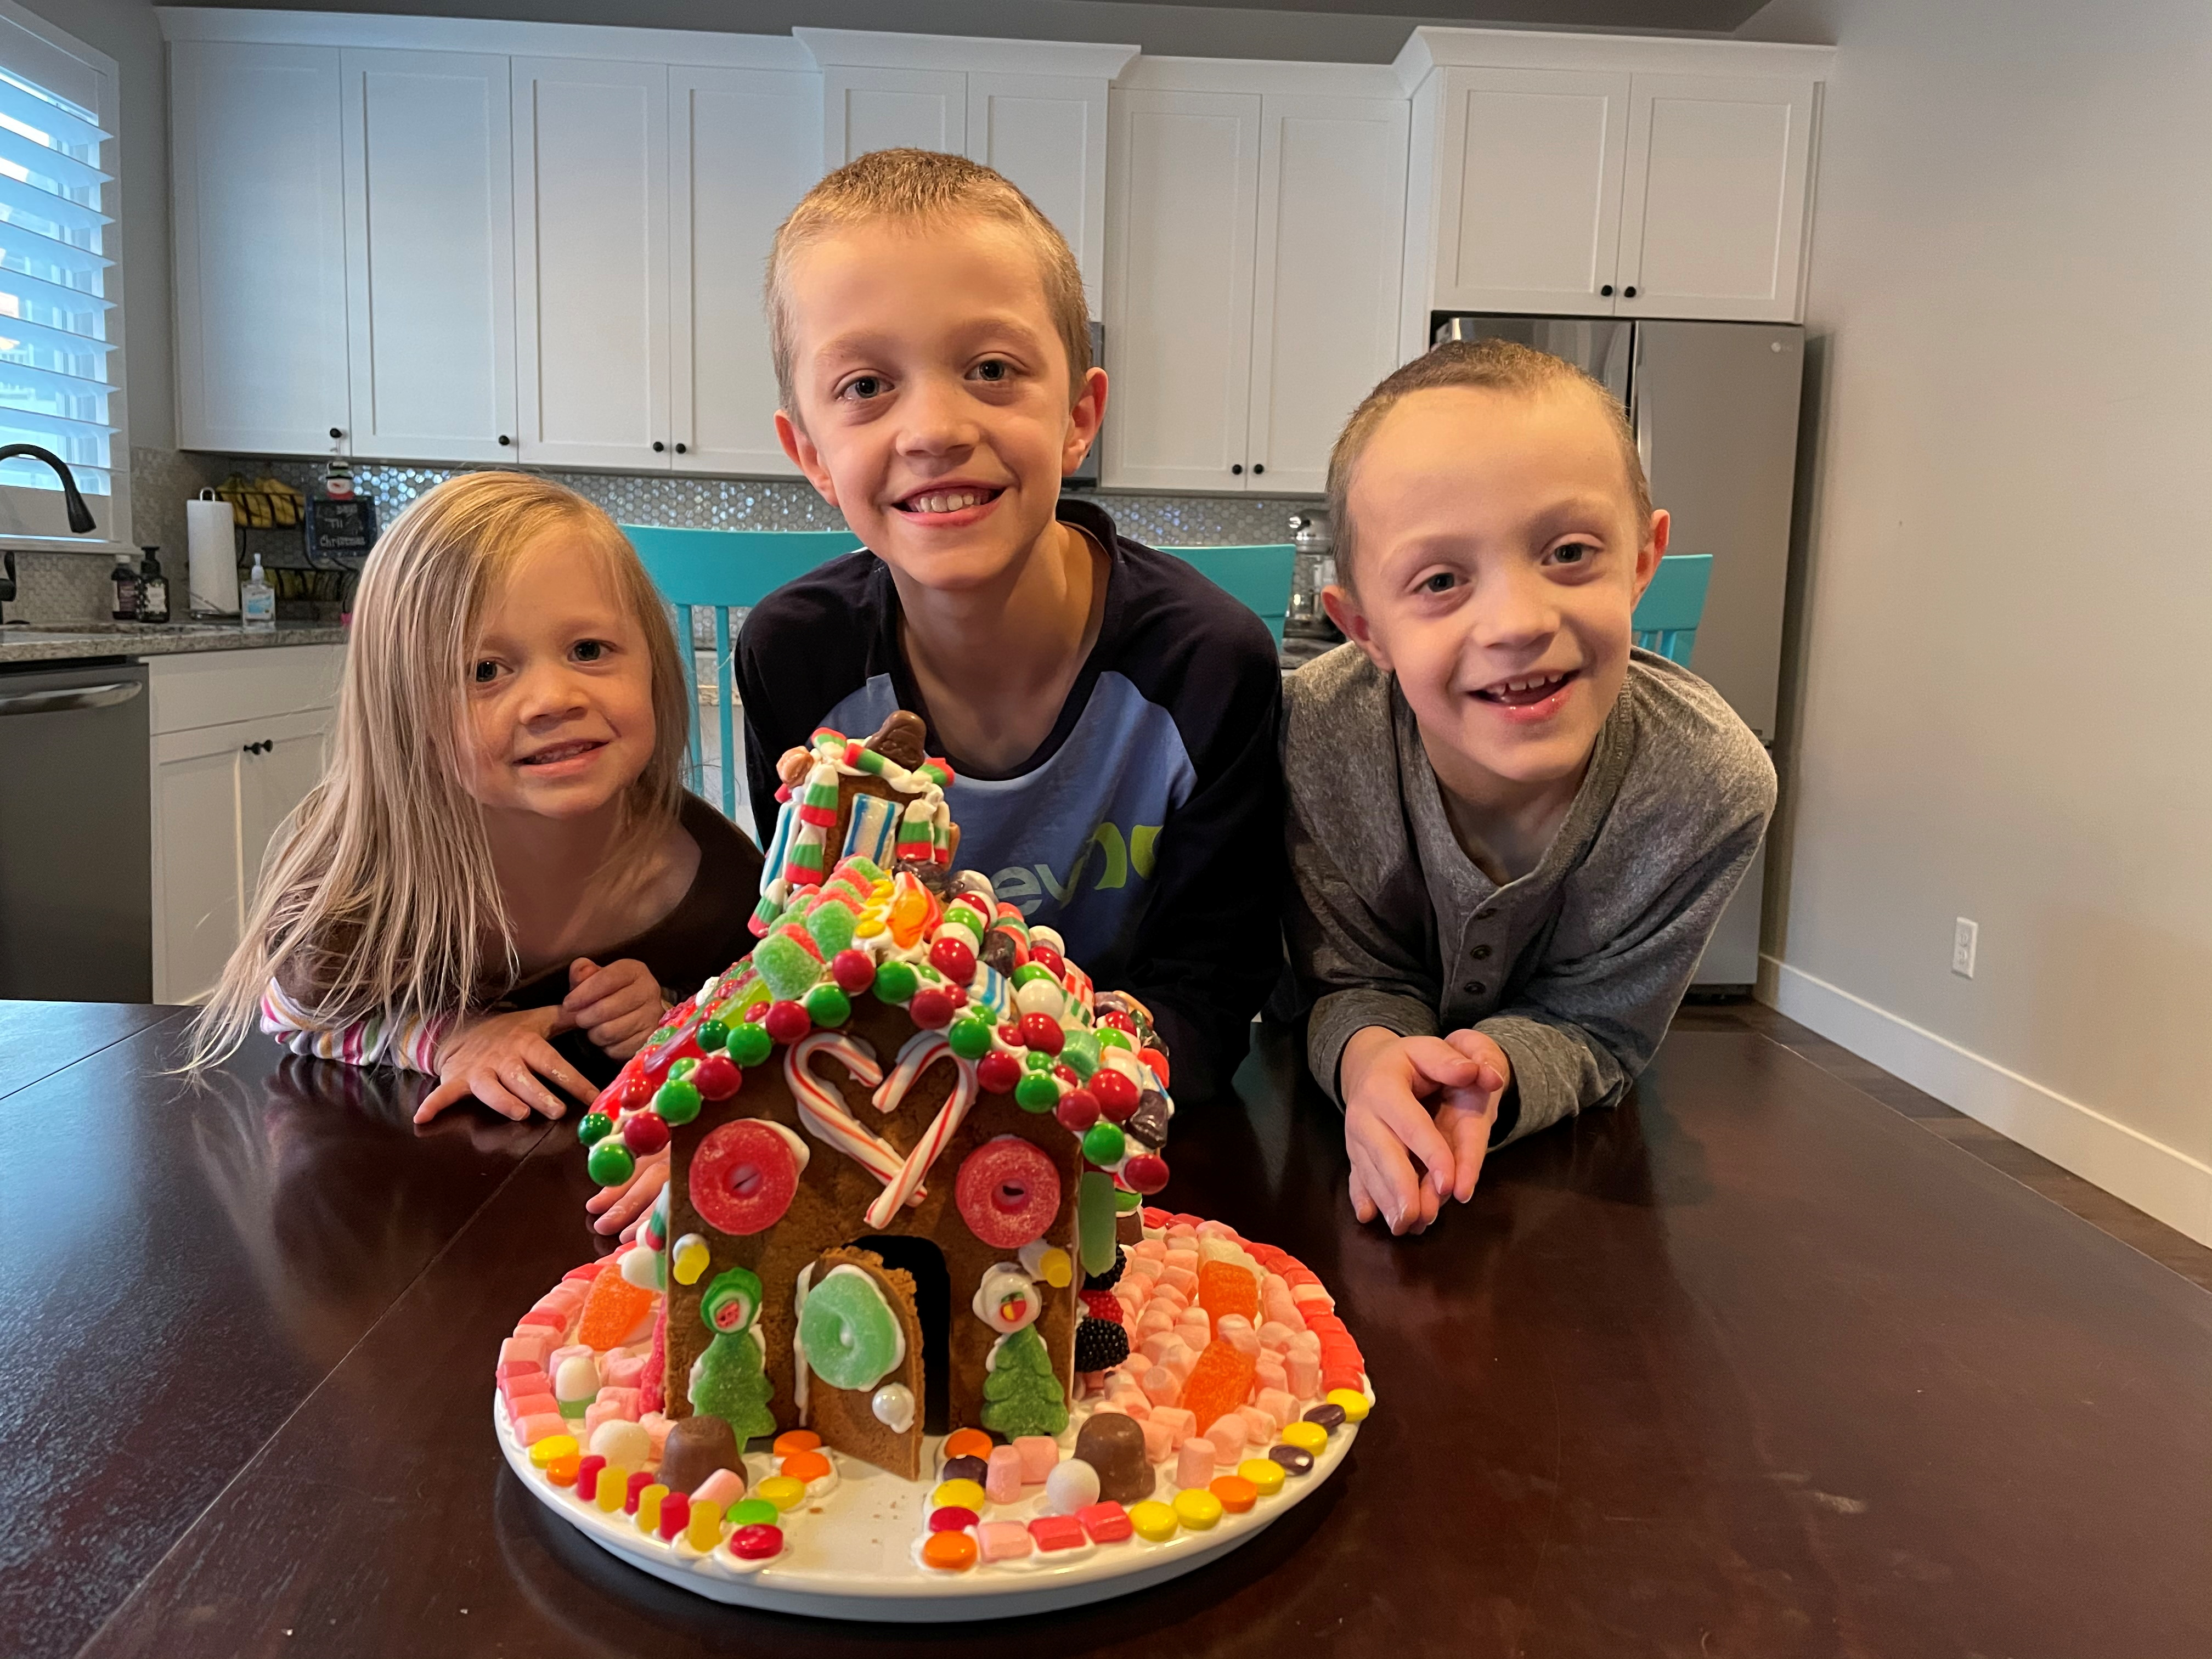 The Sweeten children, Kaden, Jackson and Emily, are seen at their home in Layton, Utah, U.S., in this undated handout photo.  Tristen Sweeten/Handout via REUTERS